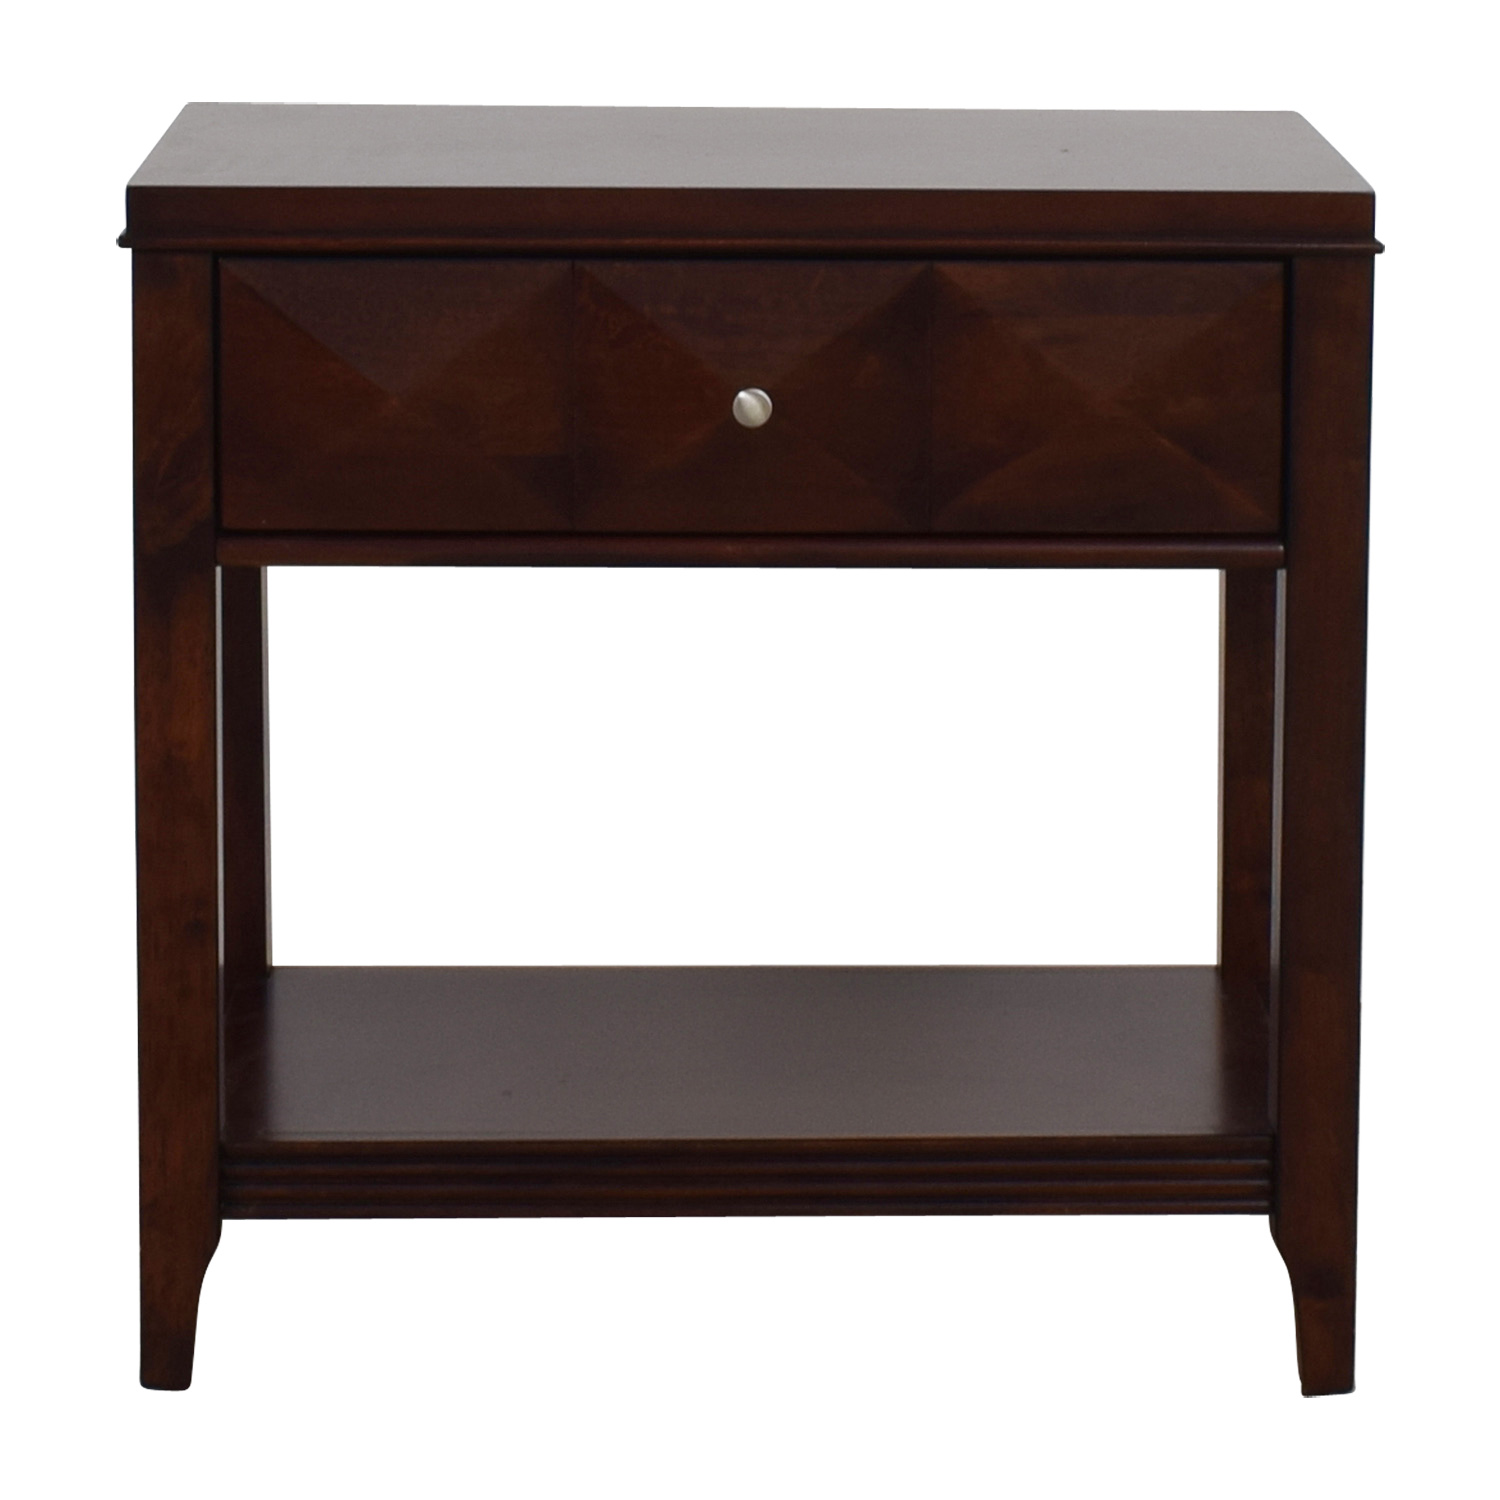 Raymour & Flanigan Raymour & Flanigan Shadow Expresso Single Drawer Nightstand price